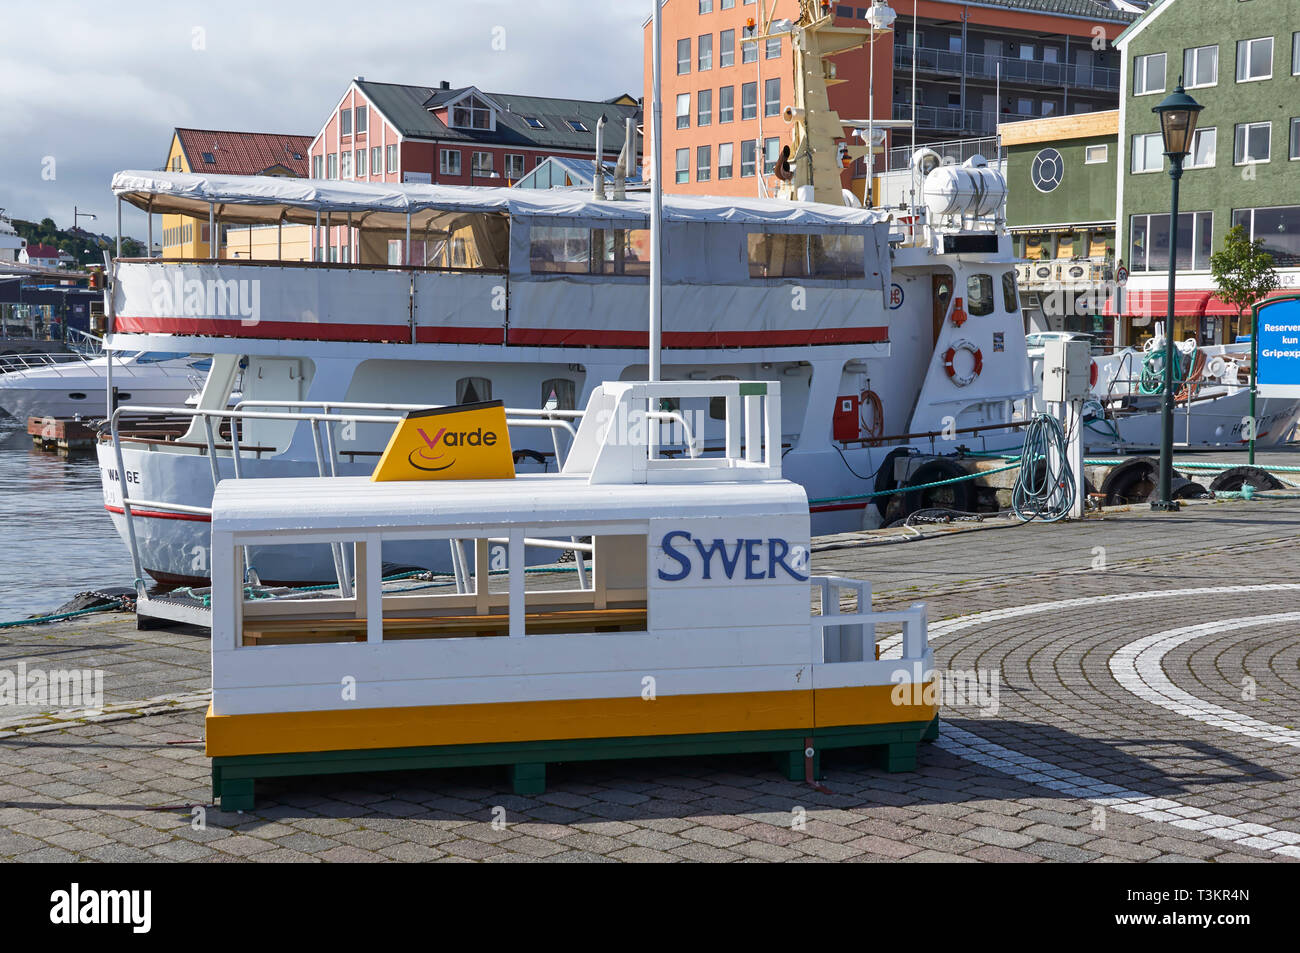 A small Childs Boat seat on the Ferry Quay at Kristiansund, with a Passenger Vessel tied up on the quayside on a Summers Day. Norway. - Stock Image